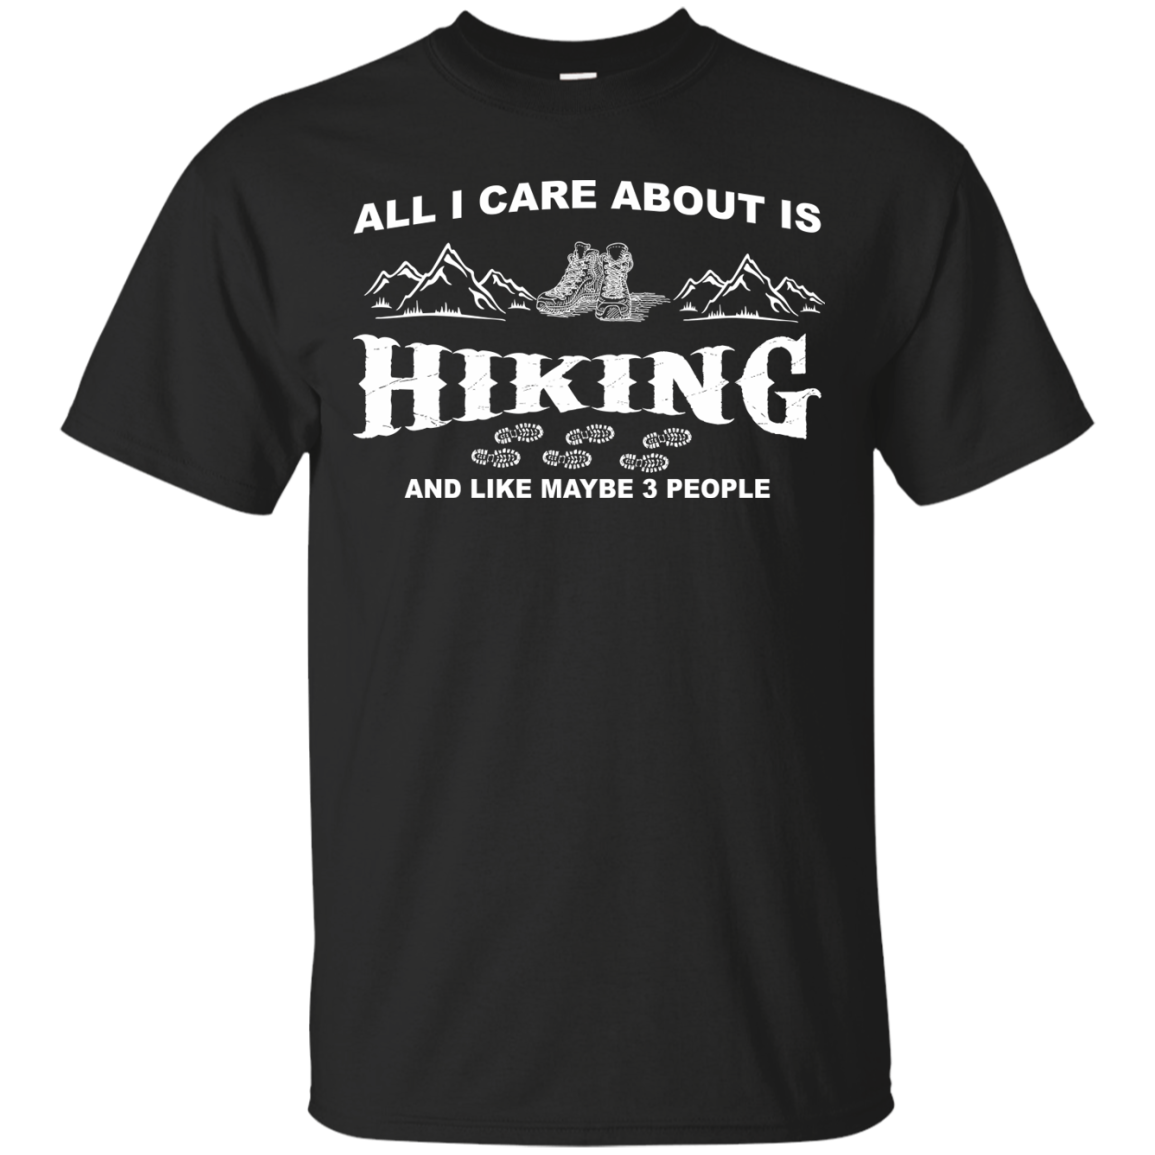 All I Care About Is Hiking And Like Maybe 3 People T Shirt